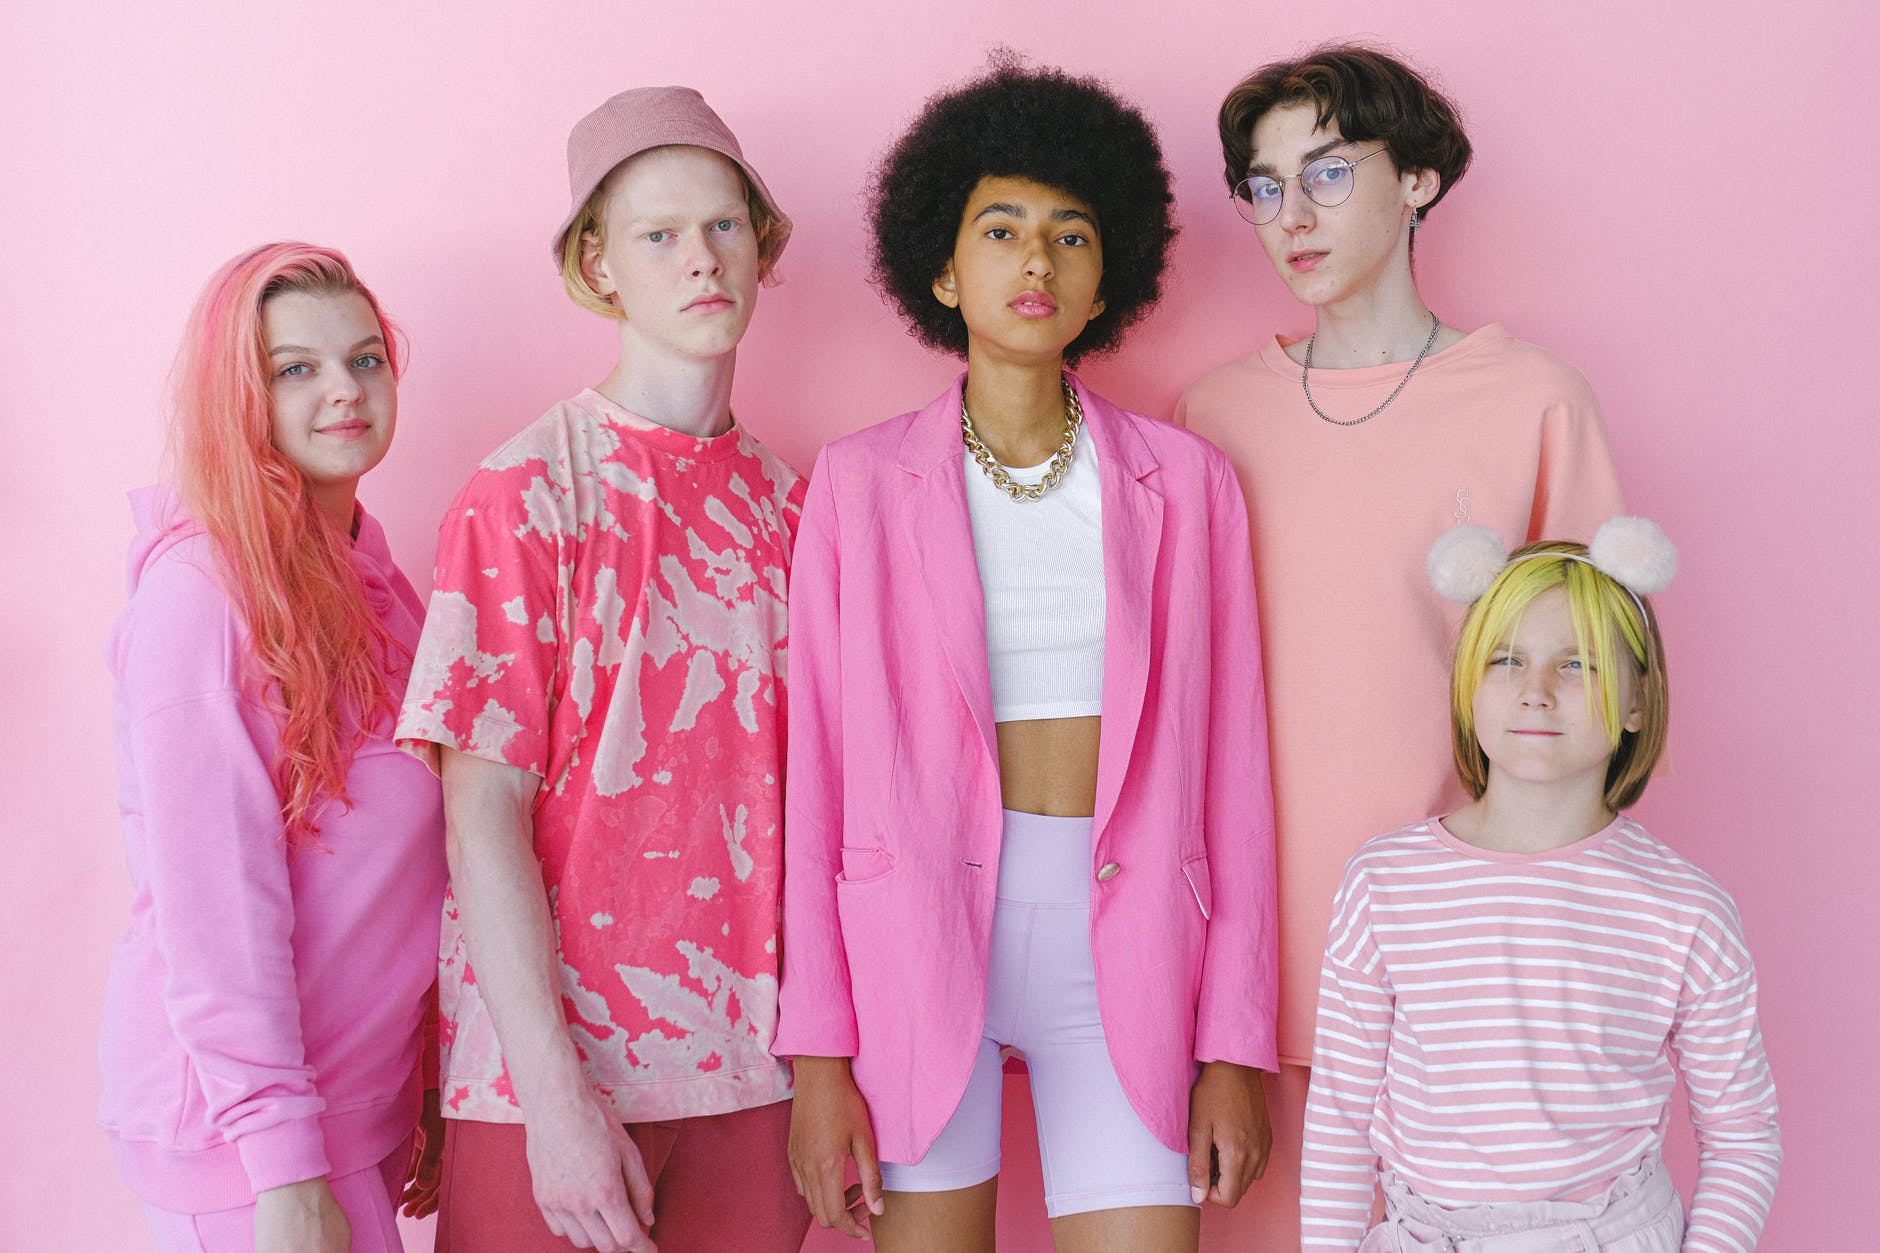 diverse teenagers in different stylish outfits